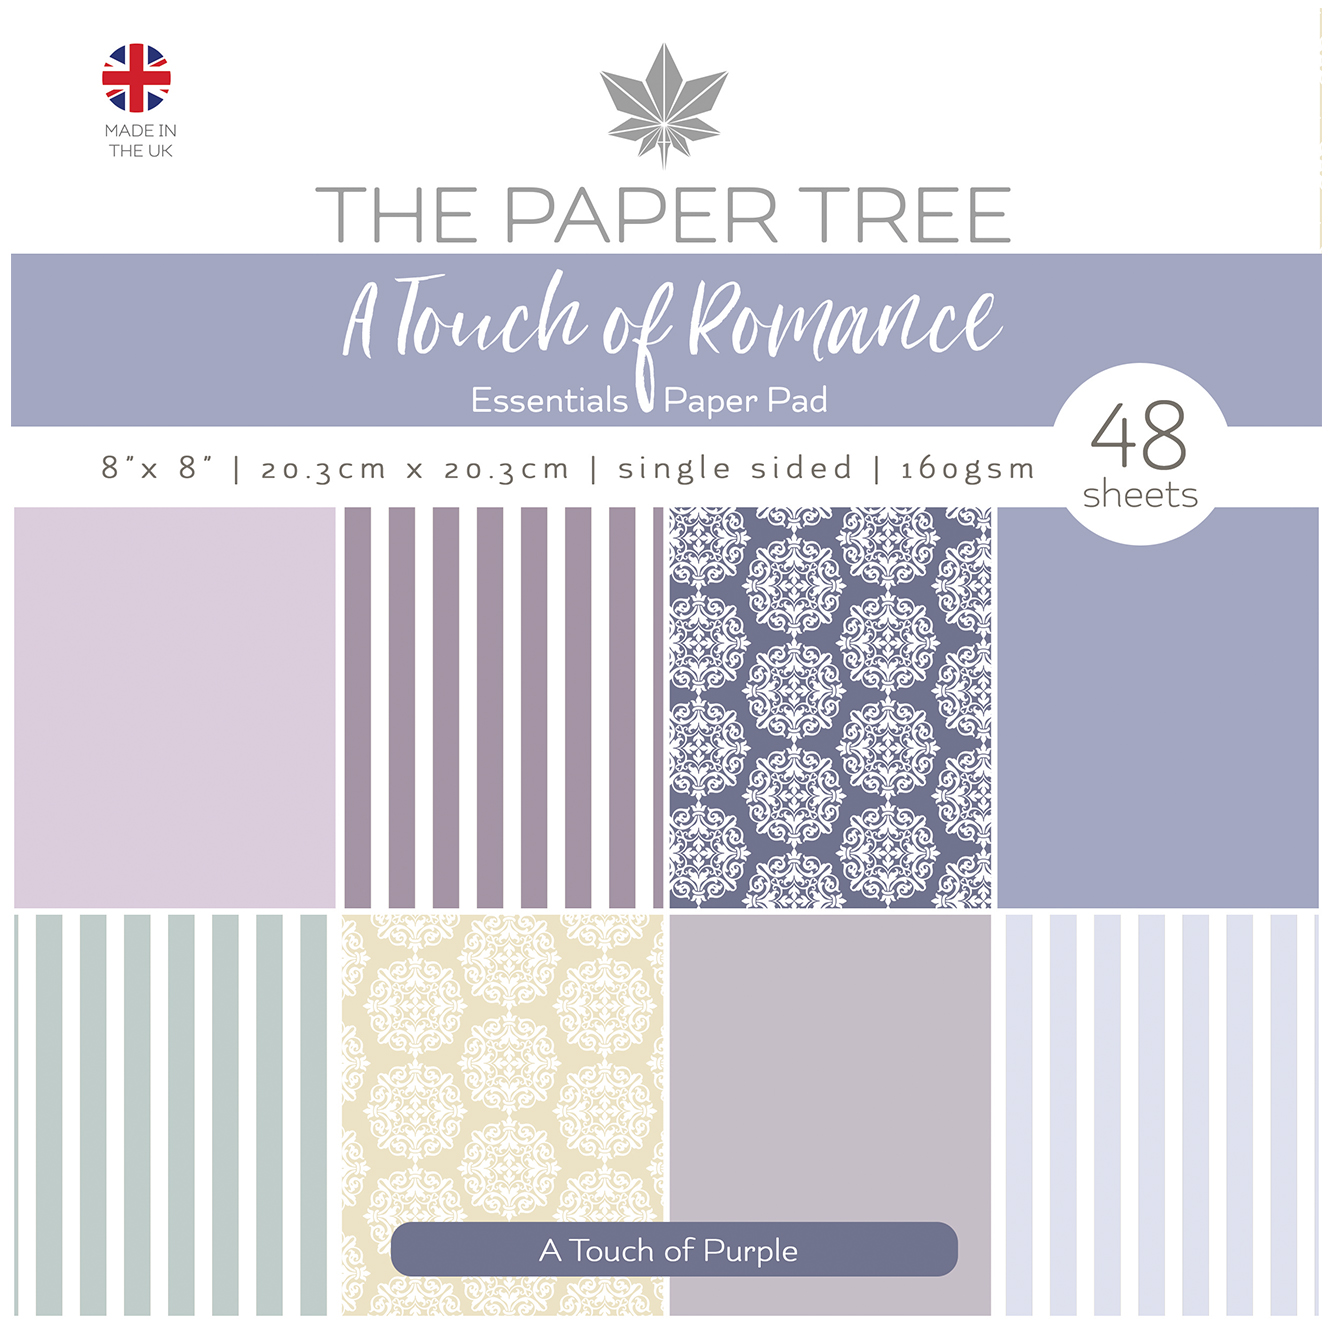 The Paper Tree A Touch of Romance Essential Paper Pad – A Touch of Purple